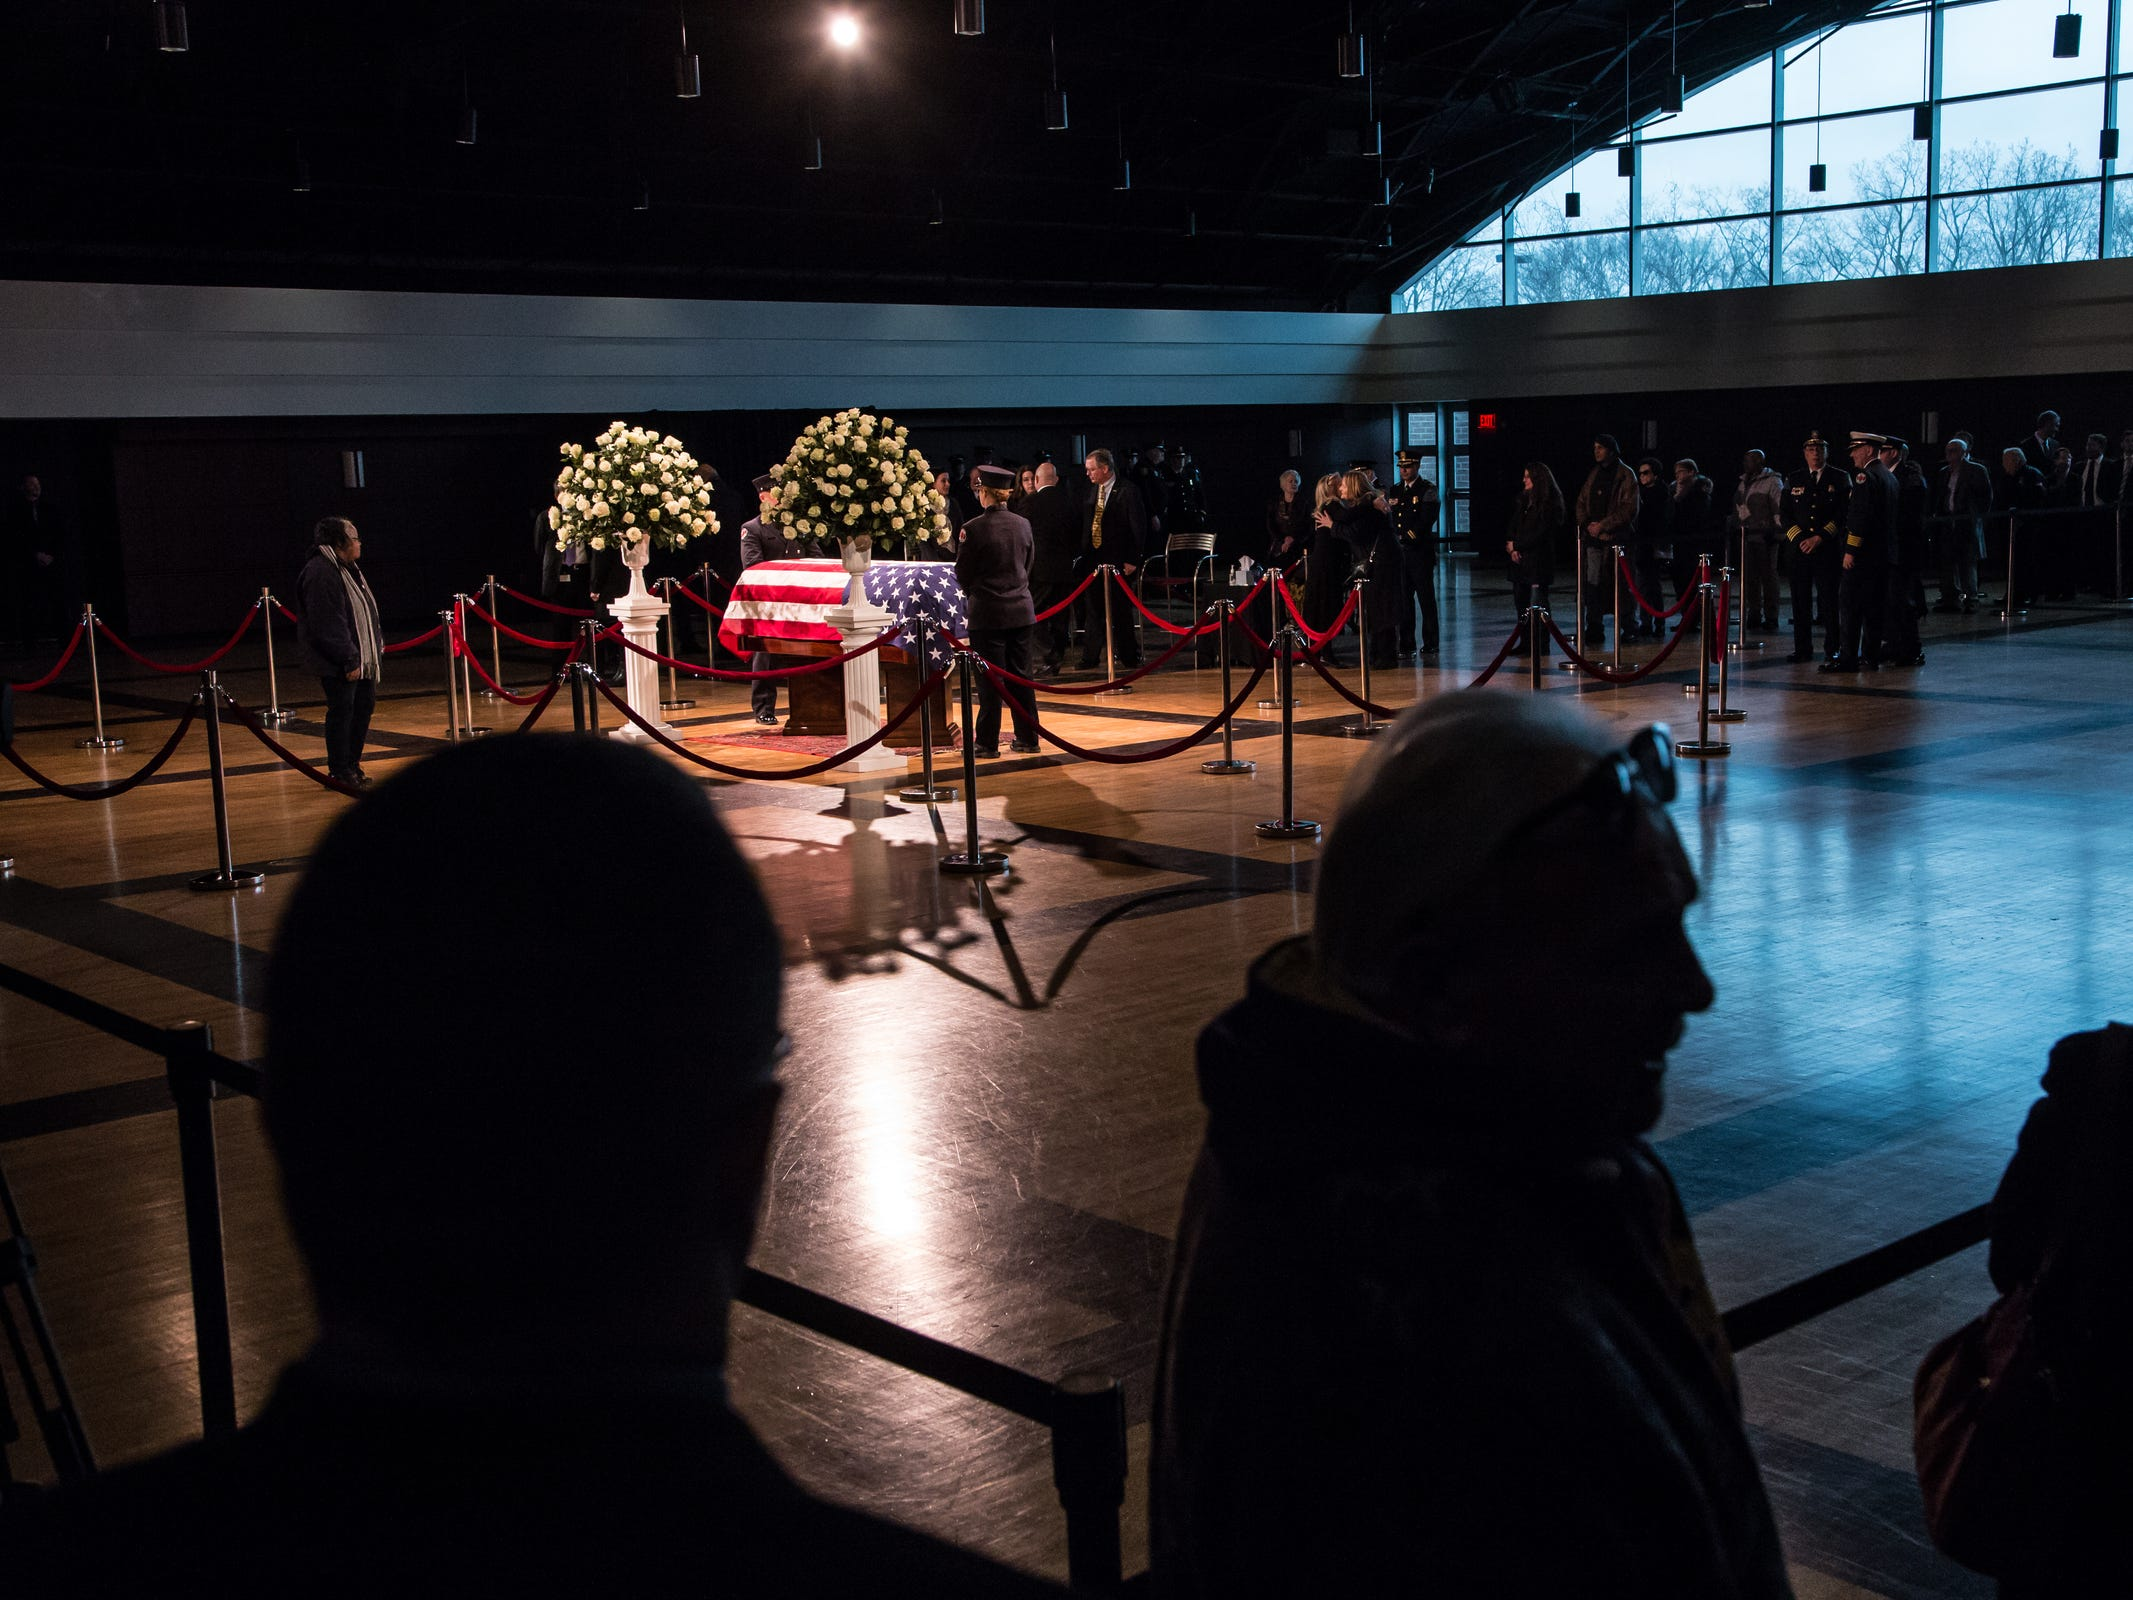 People wait in line to pay their respects during the visitation for the former US Representative John D. Dingell at the Ford Community and Performing Arts Center in Dearborn on Monday, February 11, 2019.